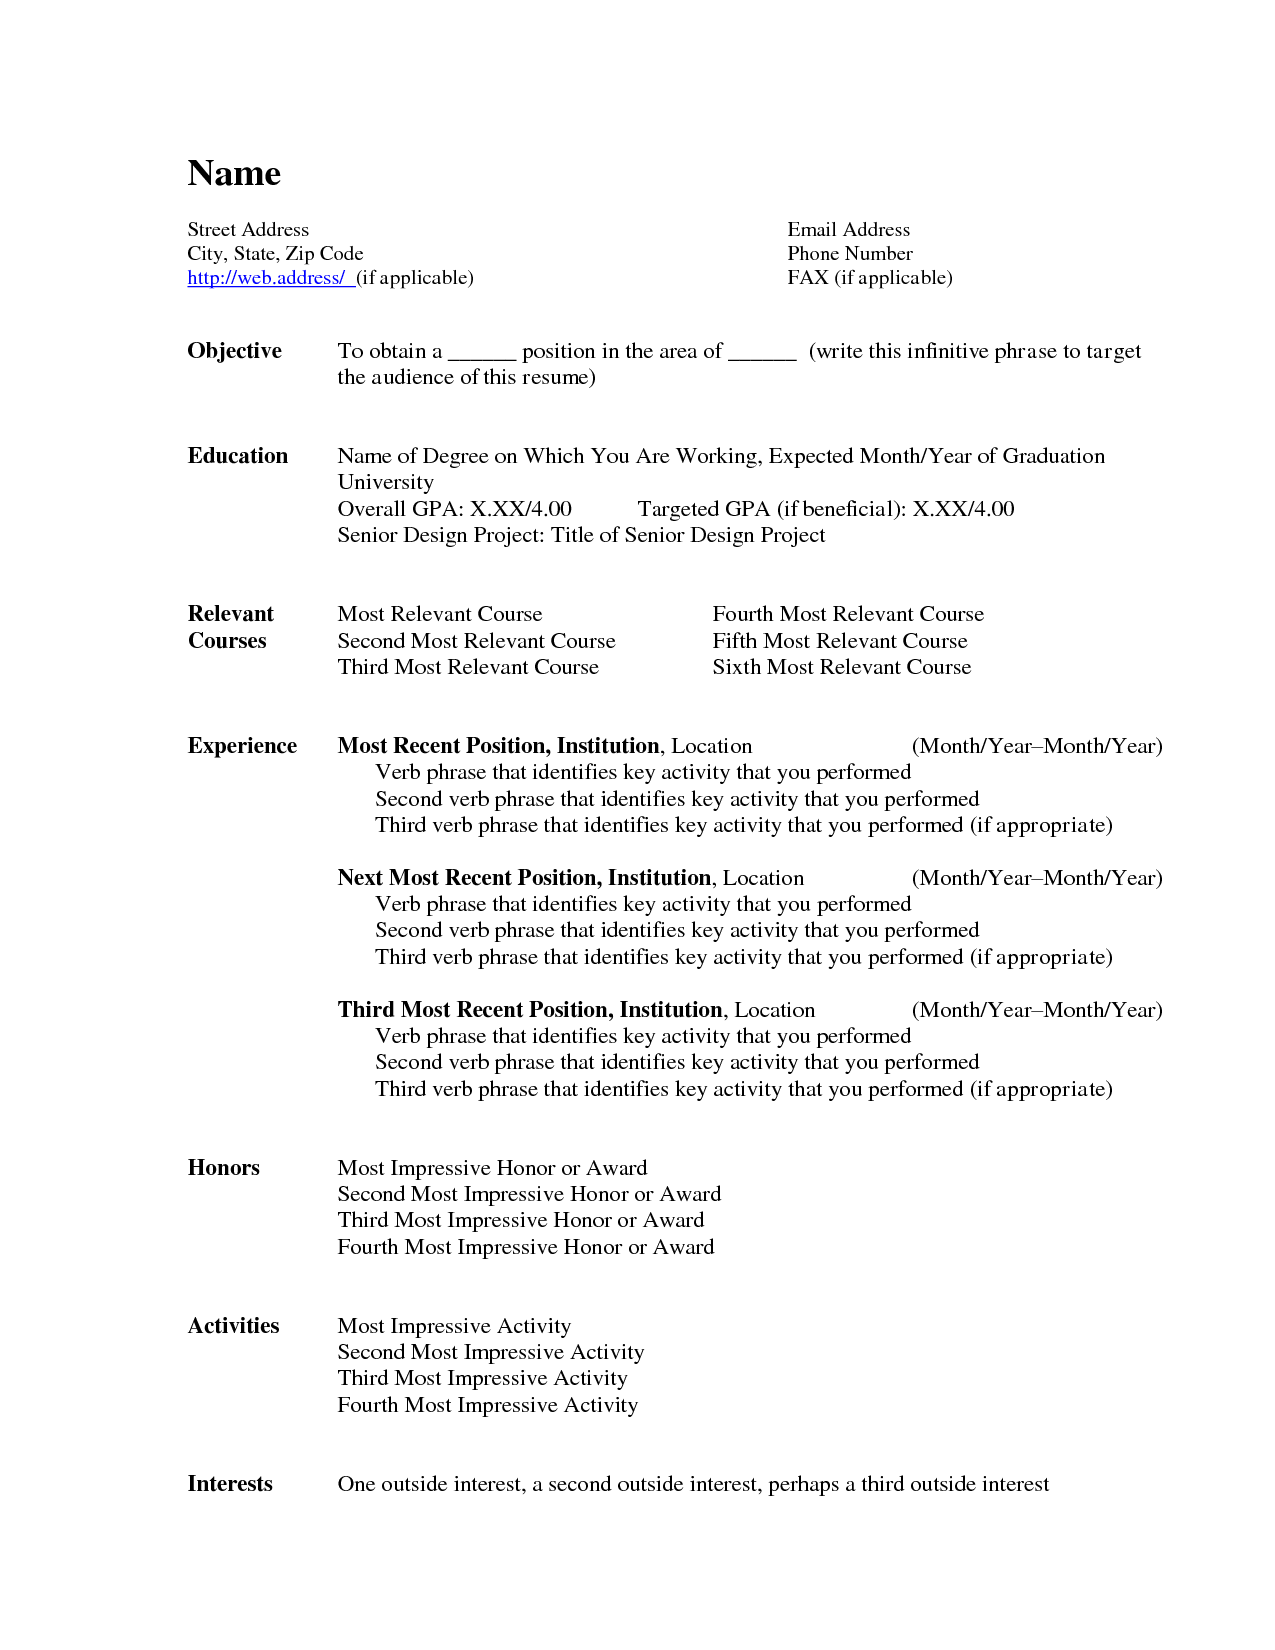 microsoft word resume template resume builder resume resume httpwww jobresume - Job Resume Template Word